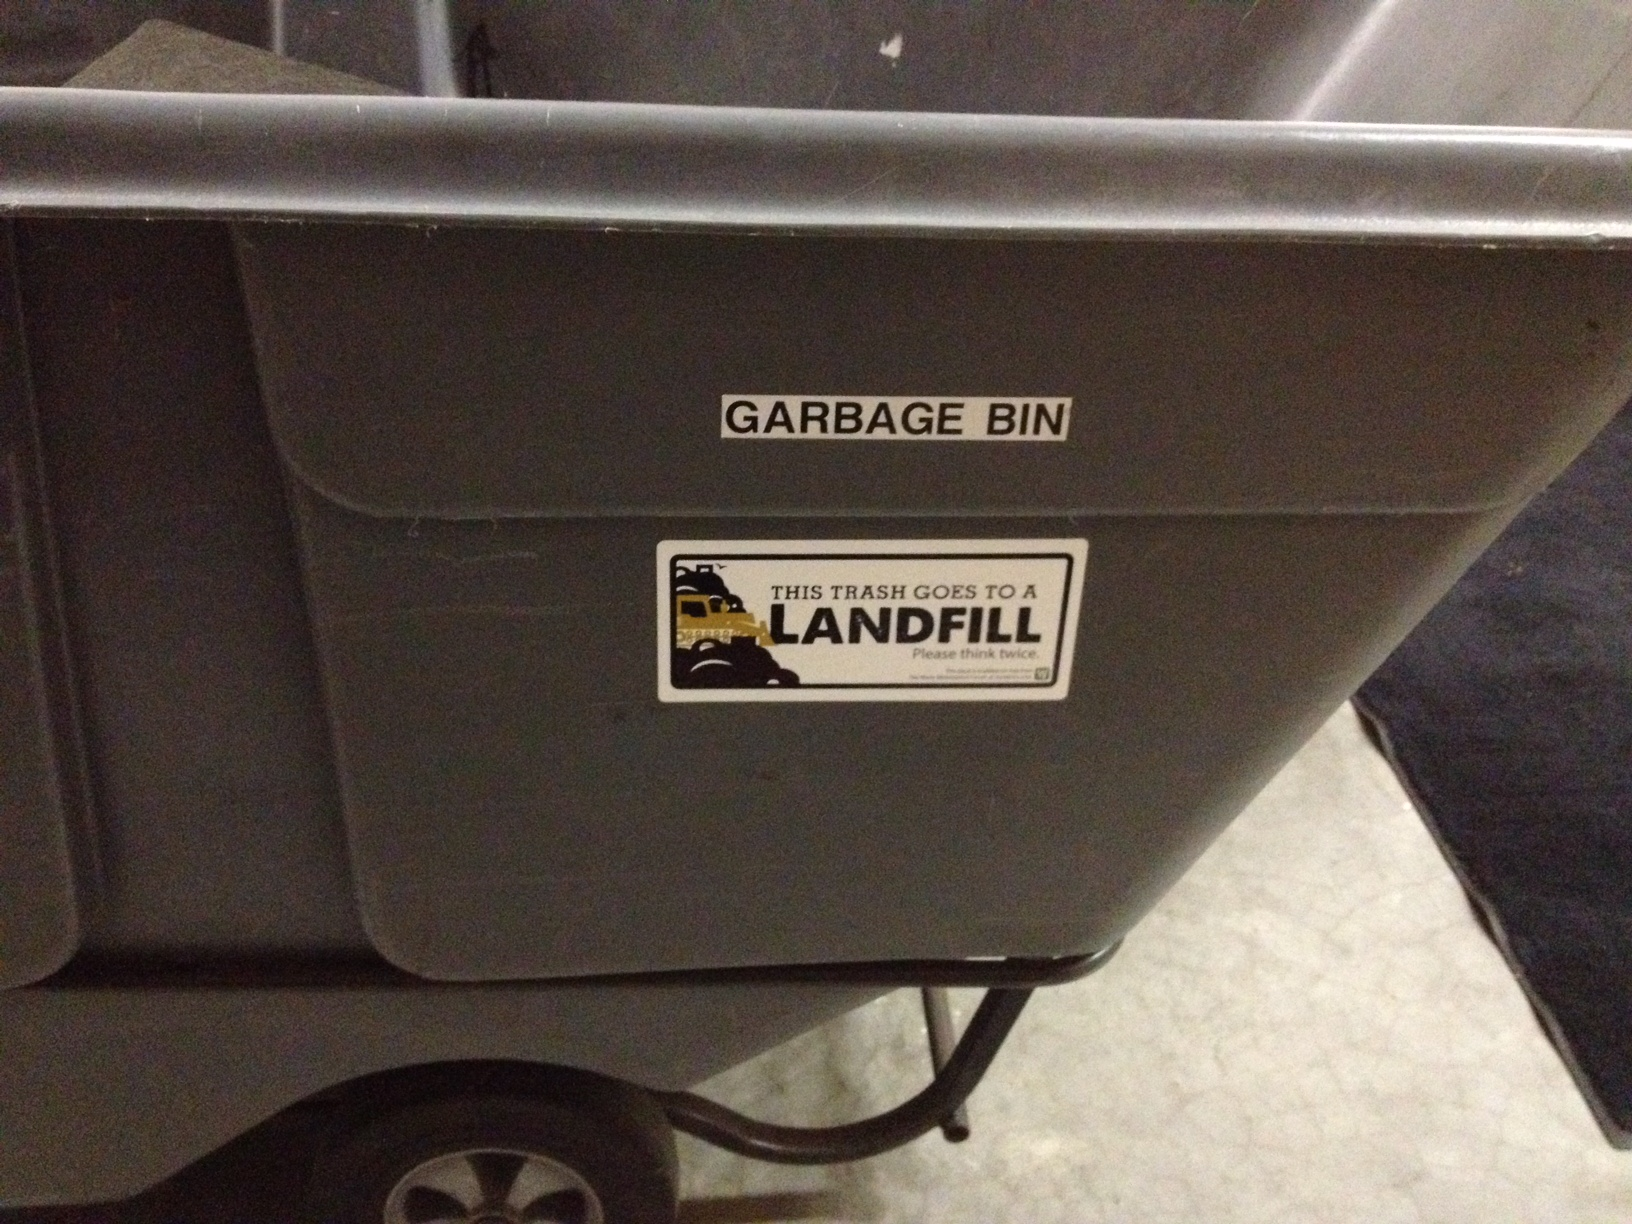 this waste goes to a landfill sticker2.JPG